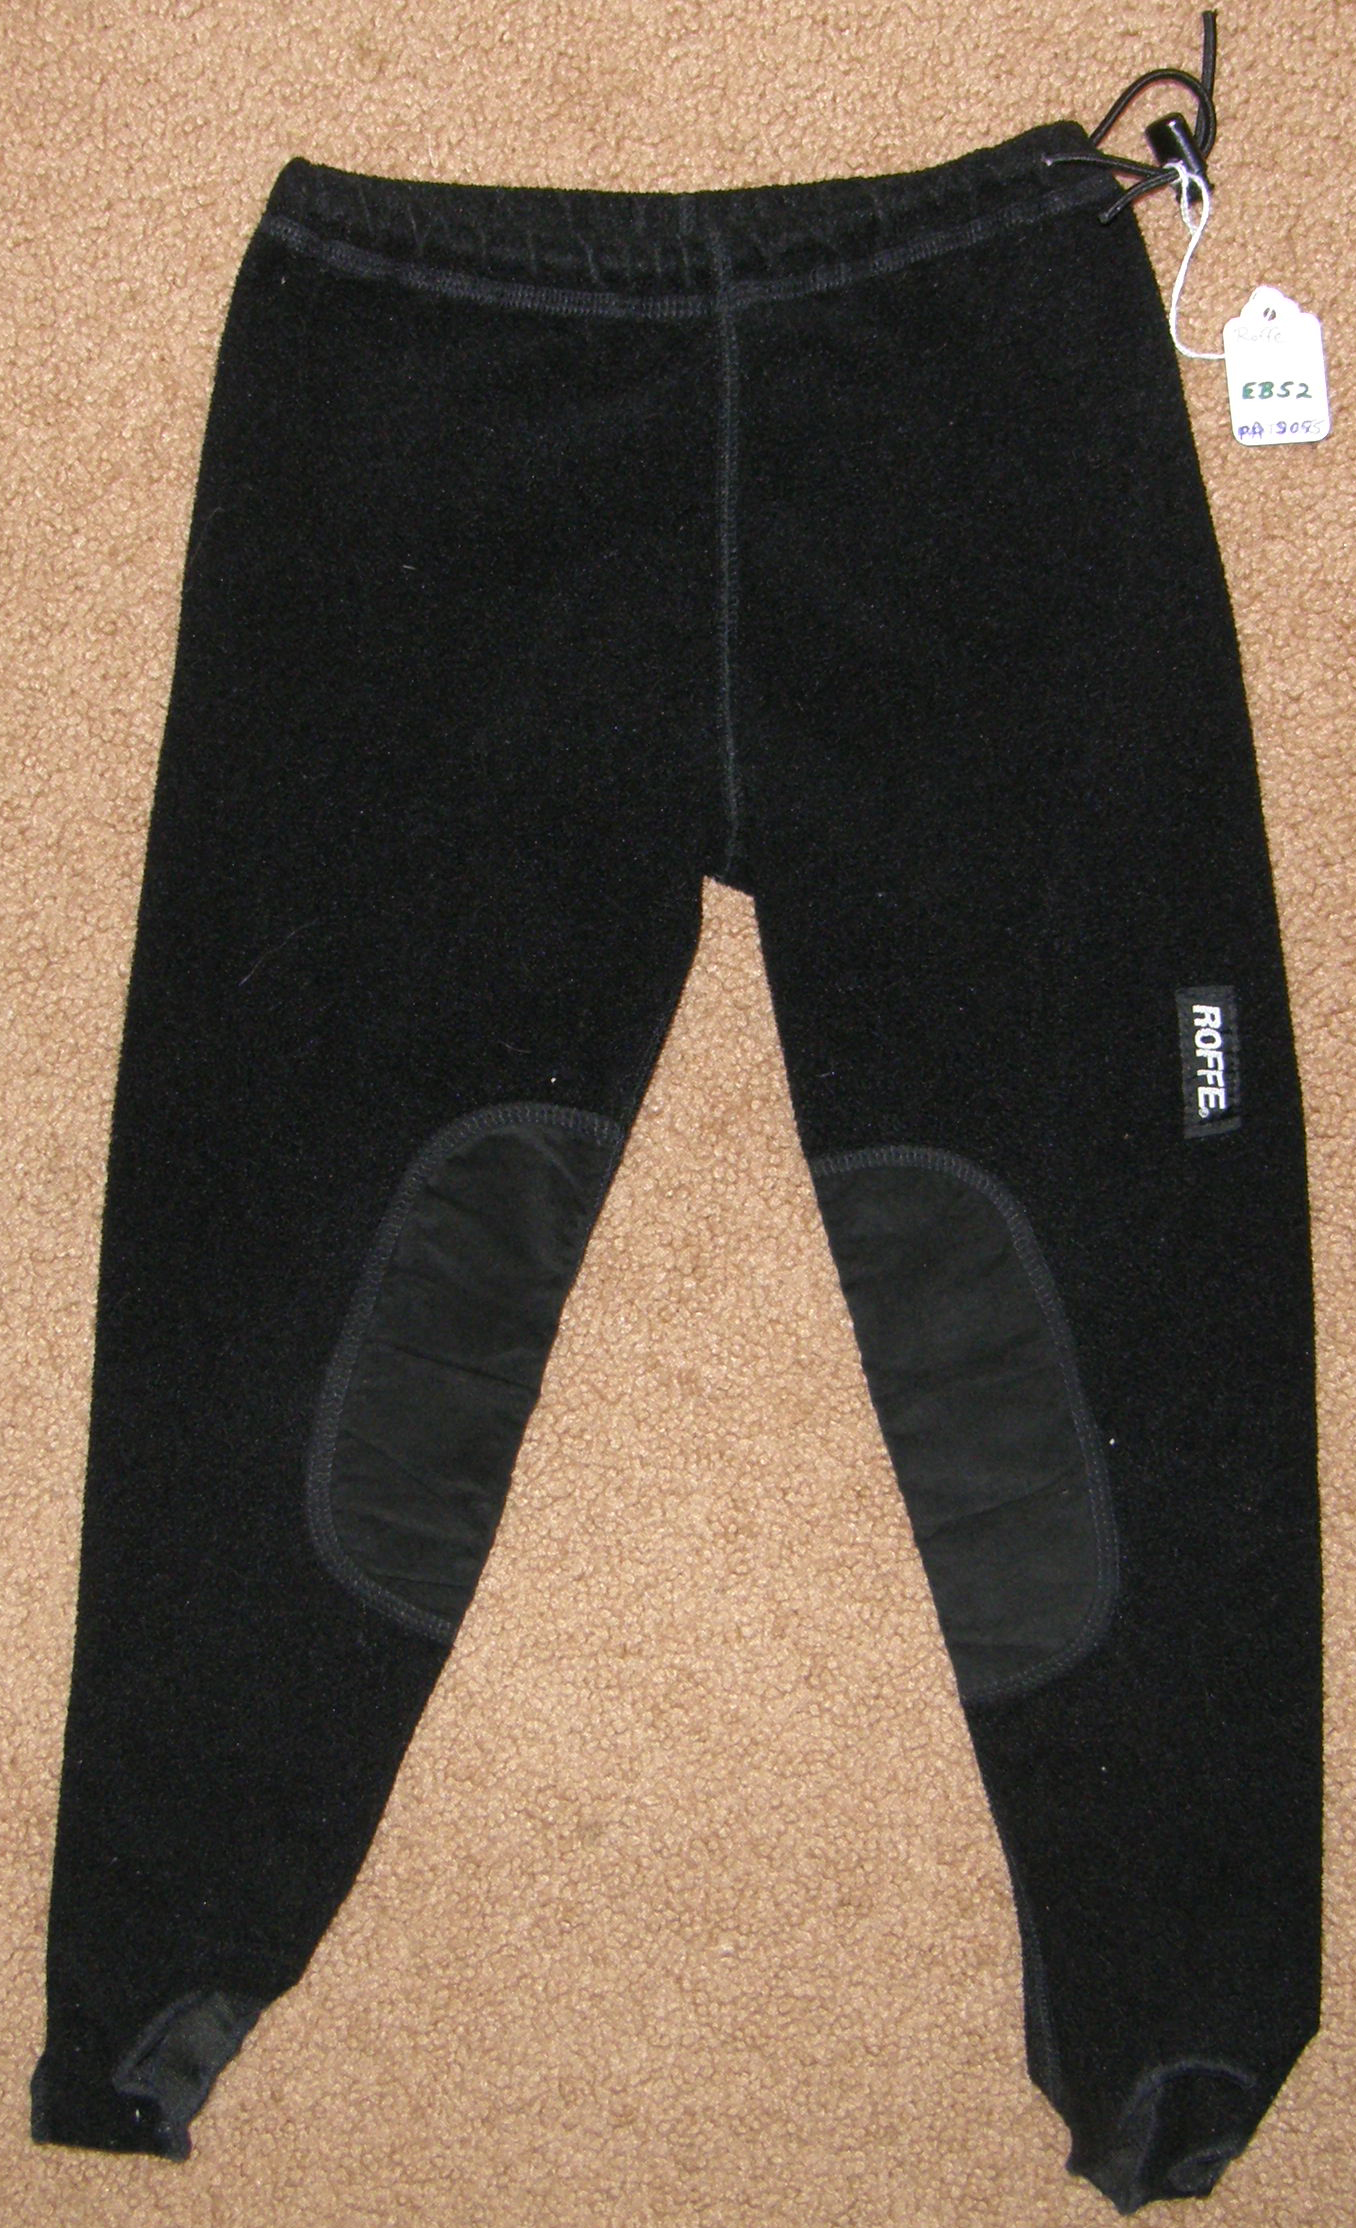 Roffe Fleece Pull On Breeches Schooling Tights Knee Patch English Breeches Winter Riding Pants Childs S Black